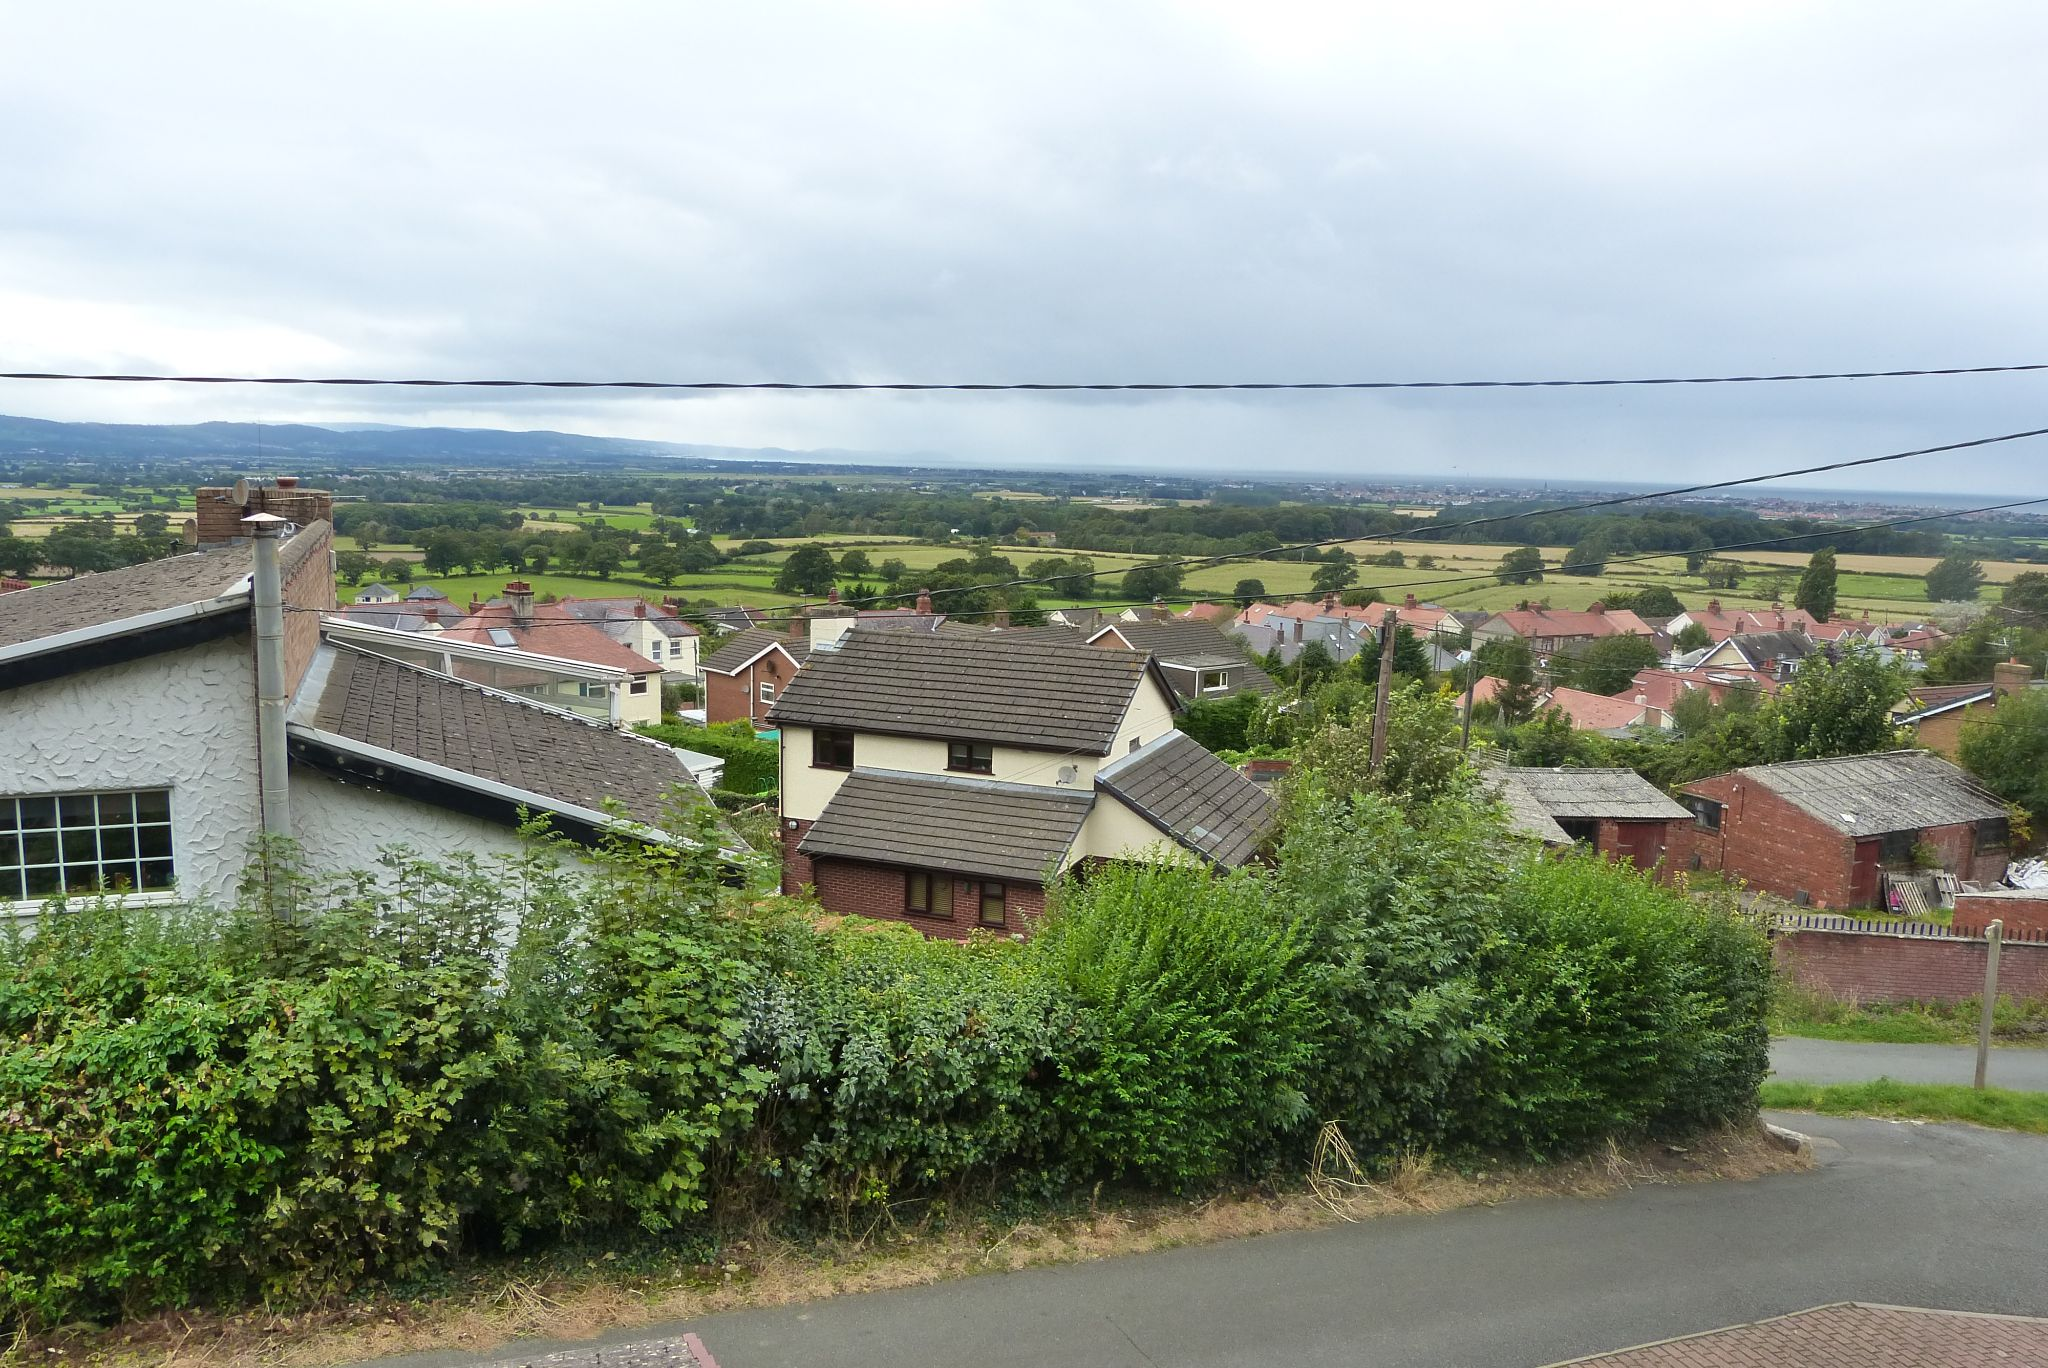 3 bedroom detached house For Sale in Dyserth - Photograph 13